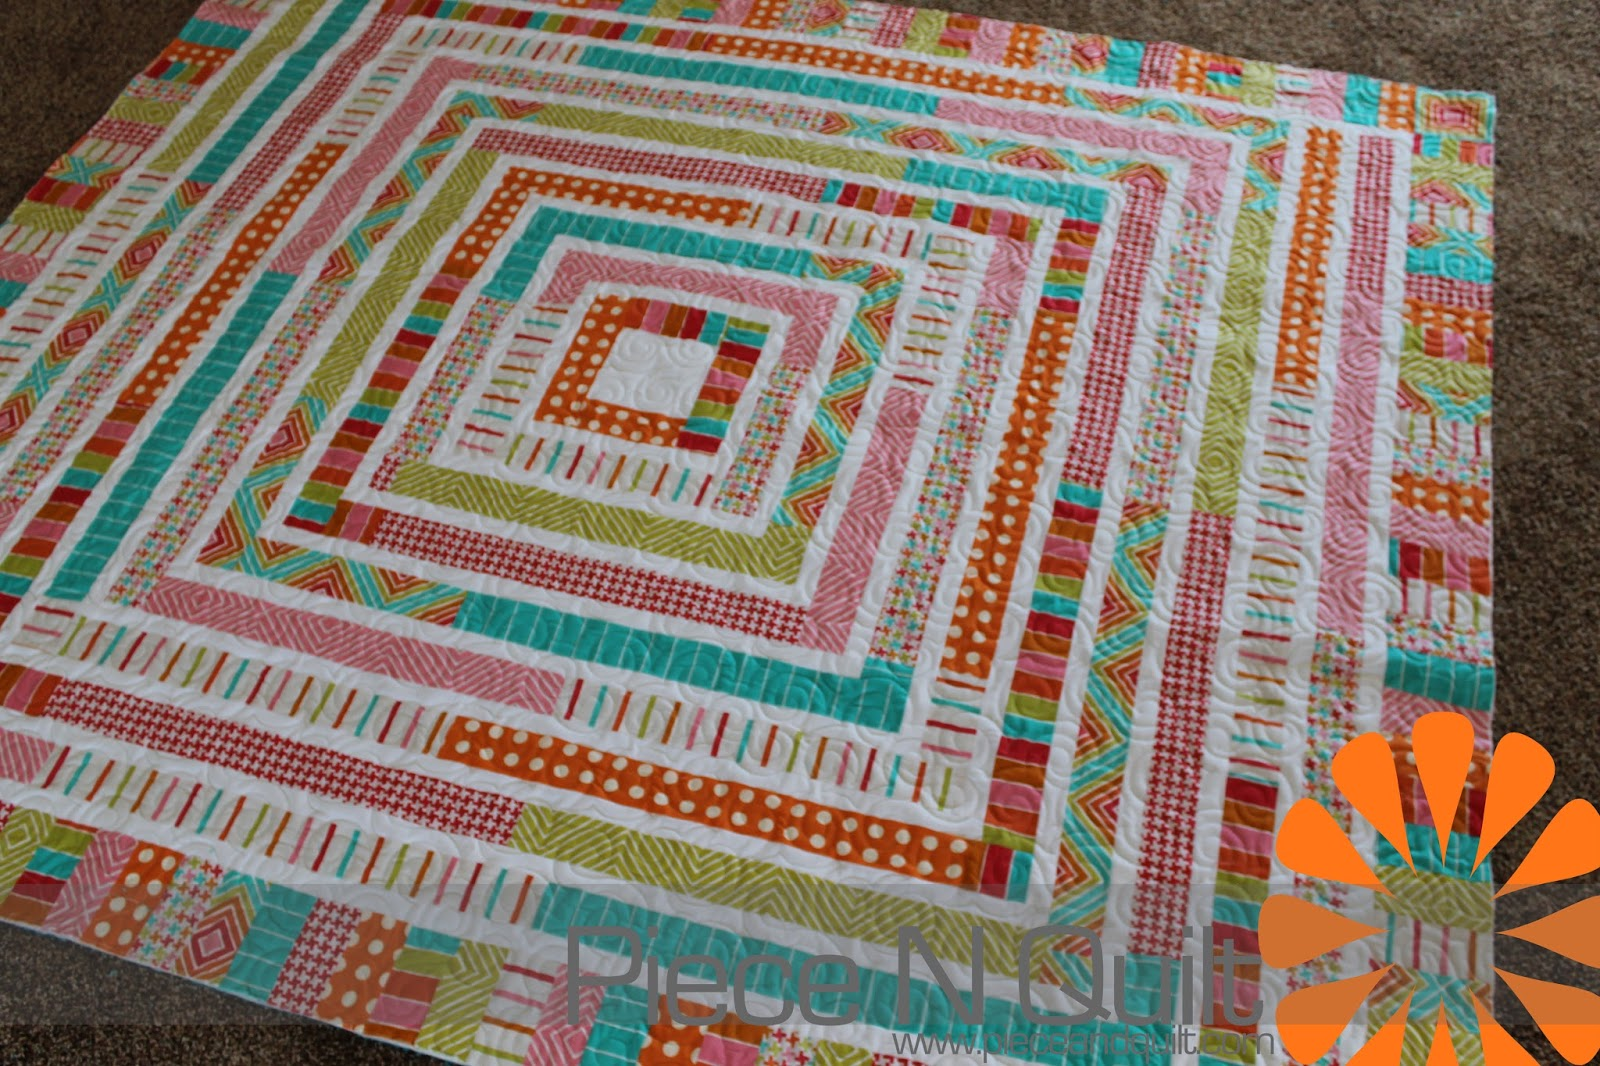 Jelly+Roll+1600+Quilt+Tutorial Piece N Quilt: Jelly Roll Quilt: http://www.pic2fly.com/Jelly+Roll+1600+Quilt+Tutorial.html